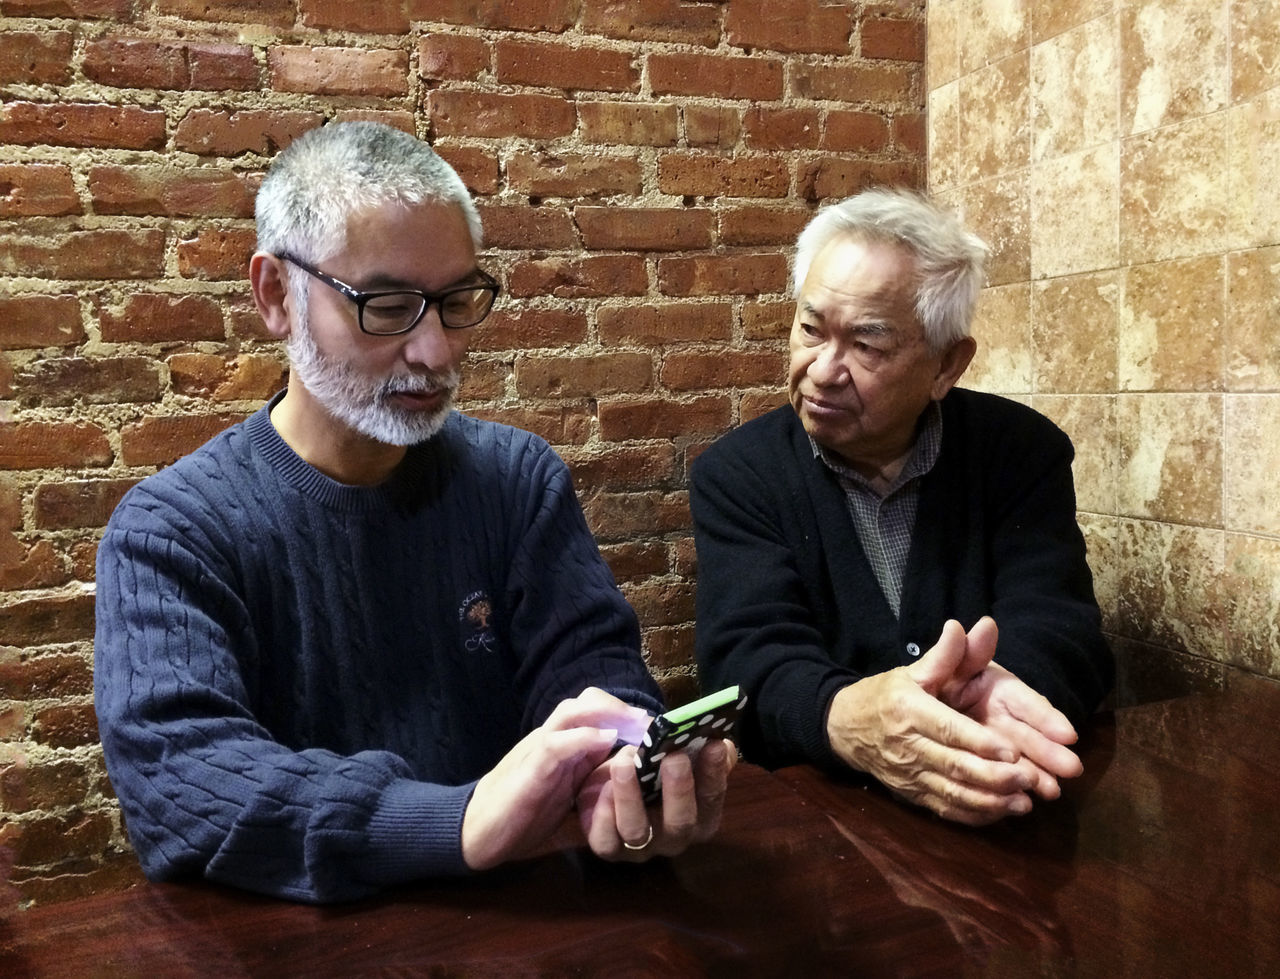 Father and Son Brick Wall Casual Clothing Concentration Conversation Day Father And Daughter Front View Leisure Activity Lifestyles Man With Cellphone Mature Adult Men In Corner Of Room Old And Young White Hair Men People Together By August 3 2016 People And Places